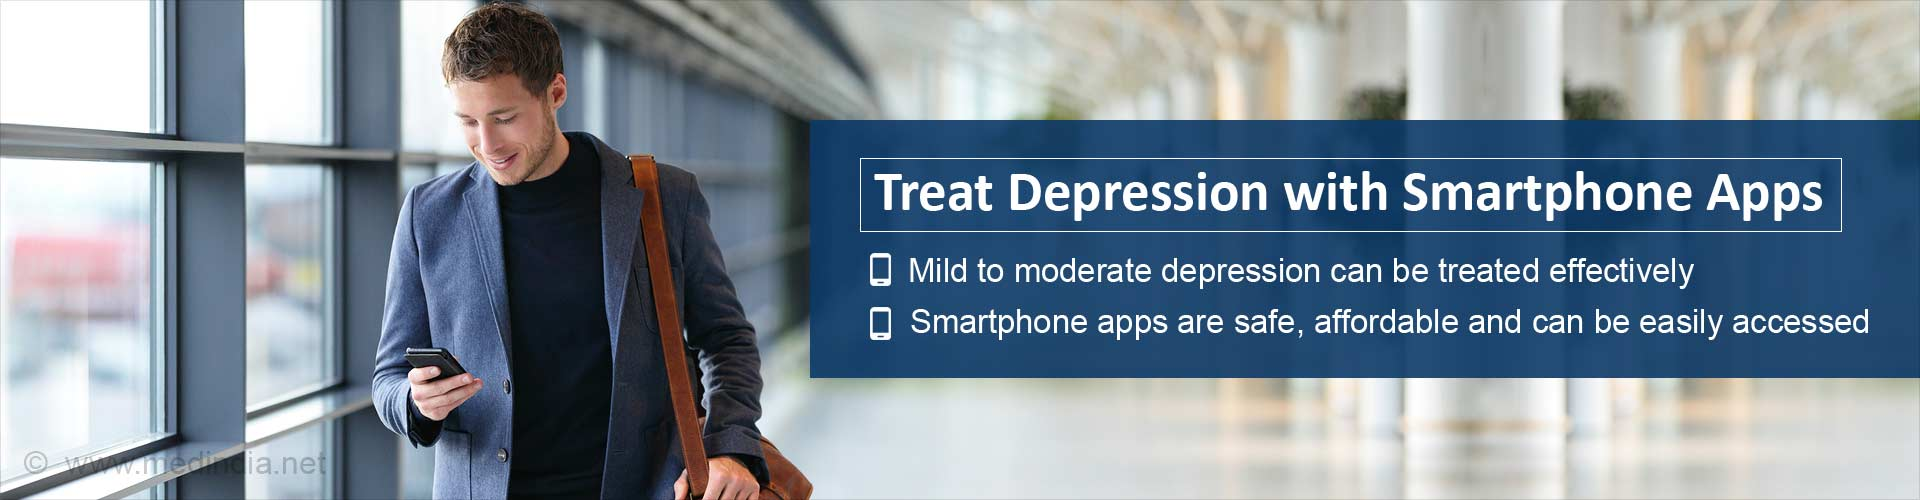 Smartphone Apps Help Treat Depression